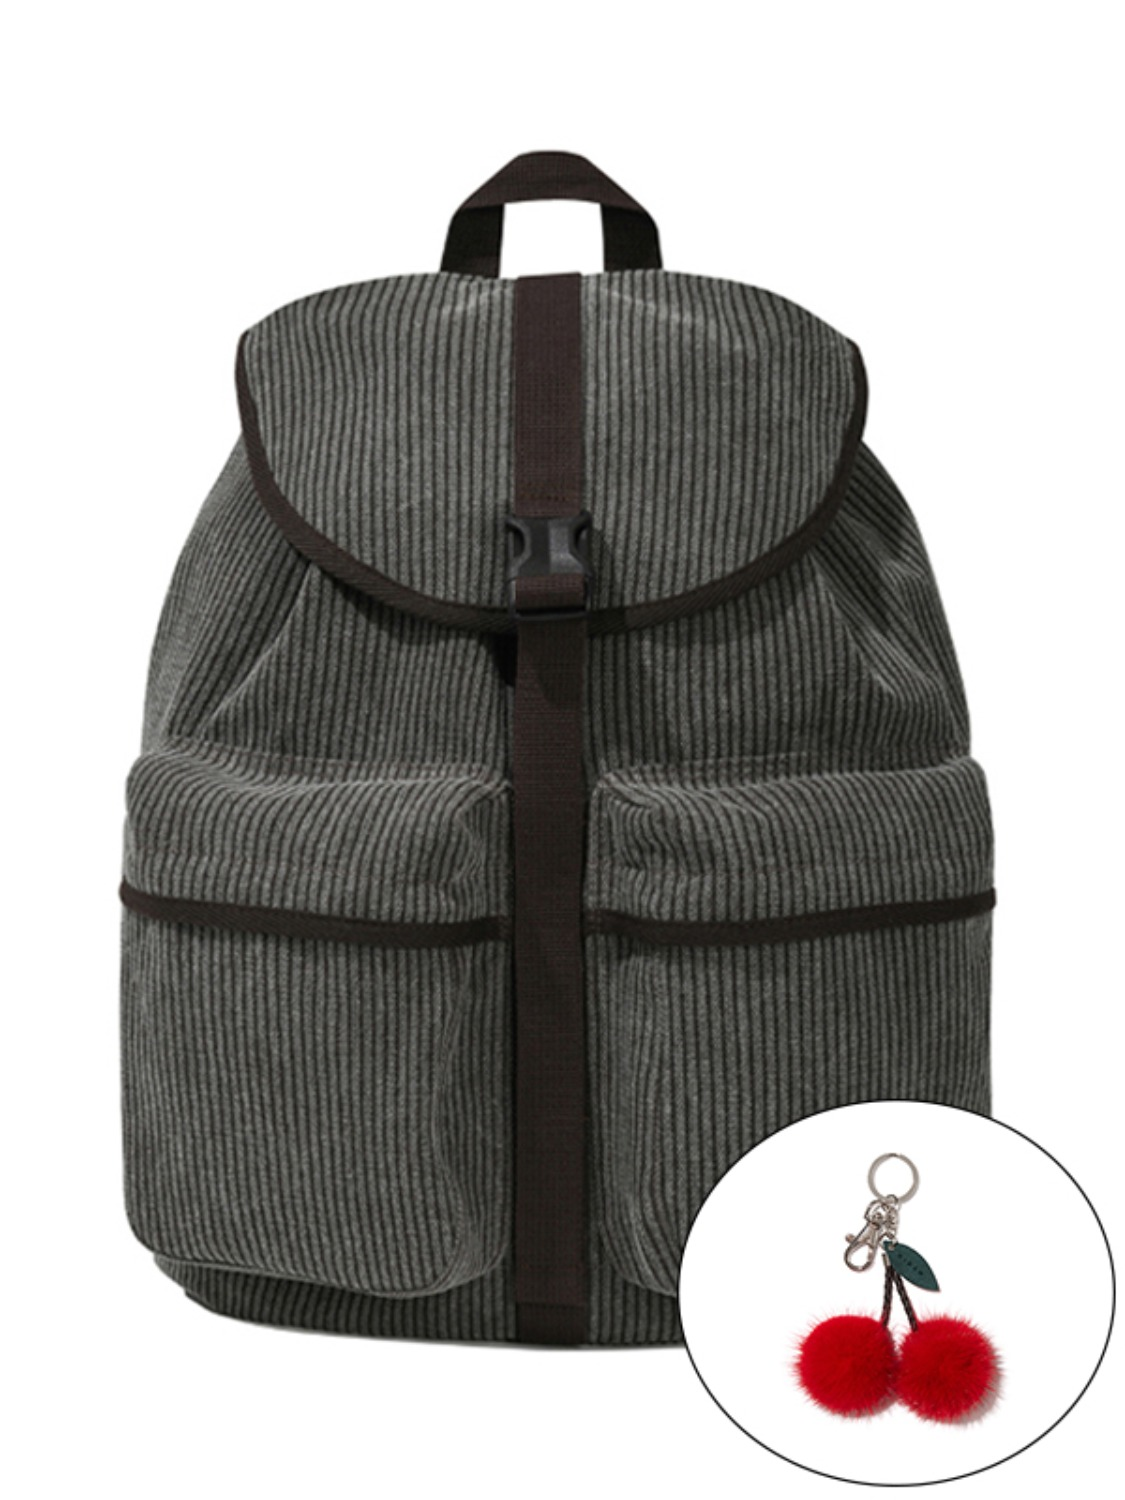 KIRSH POCKET VINTAGE BACKPACK KS [BROWN]